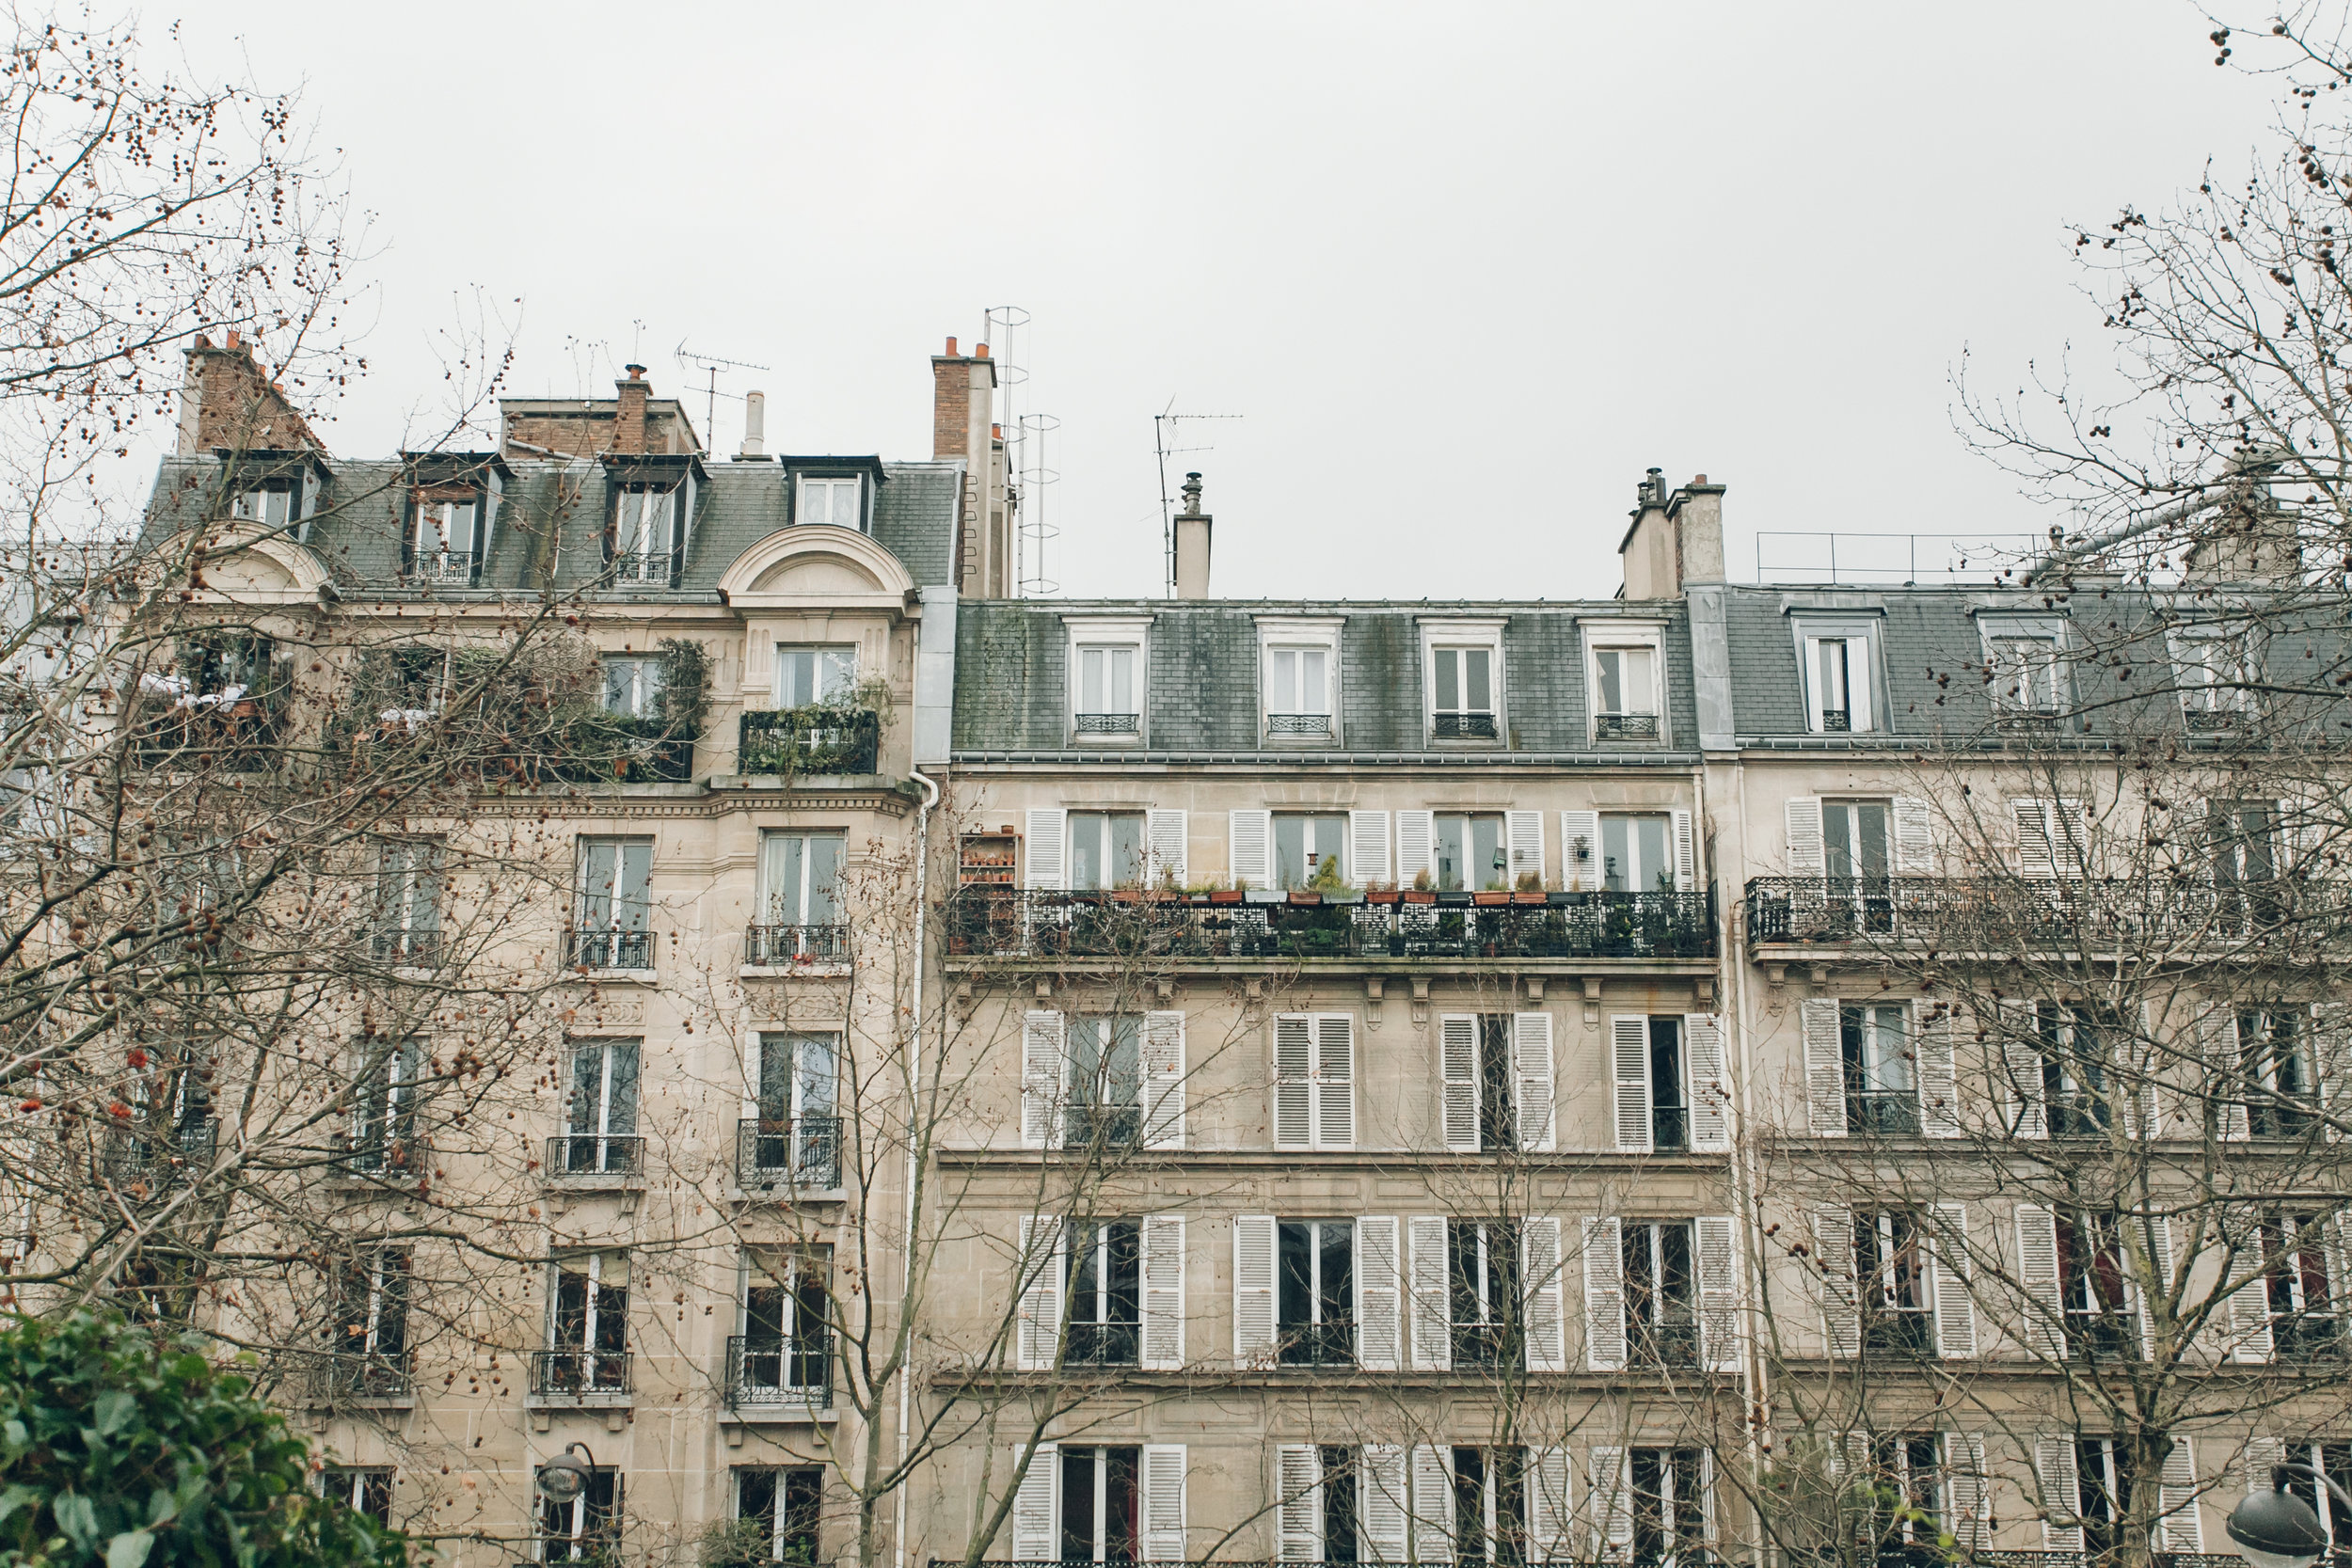 Paris in the Winter by Haarkon. Parisian rooftops in the snow.